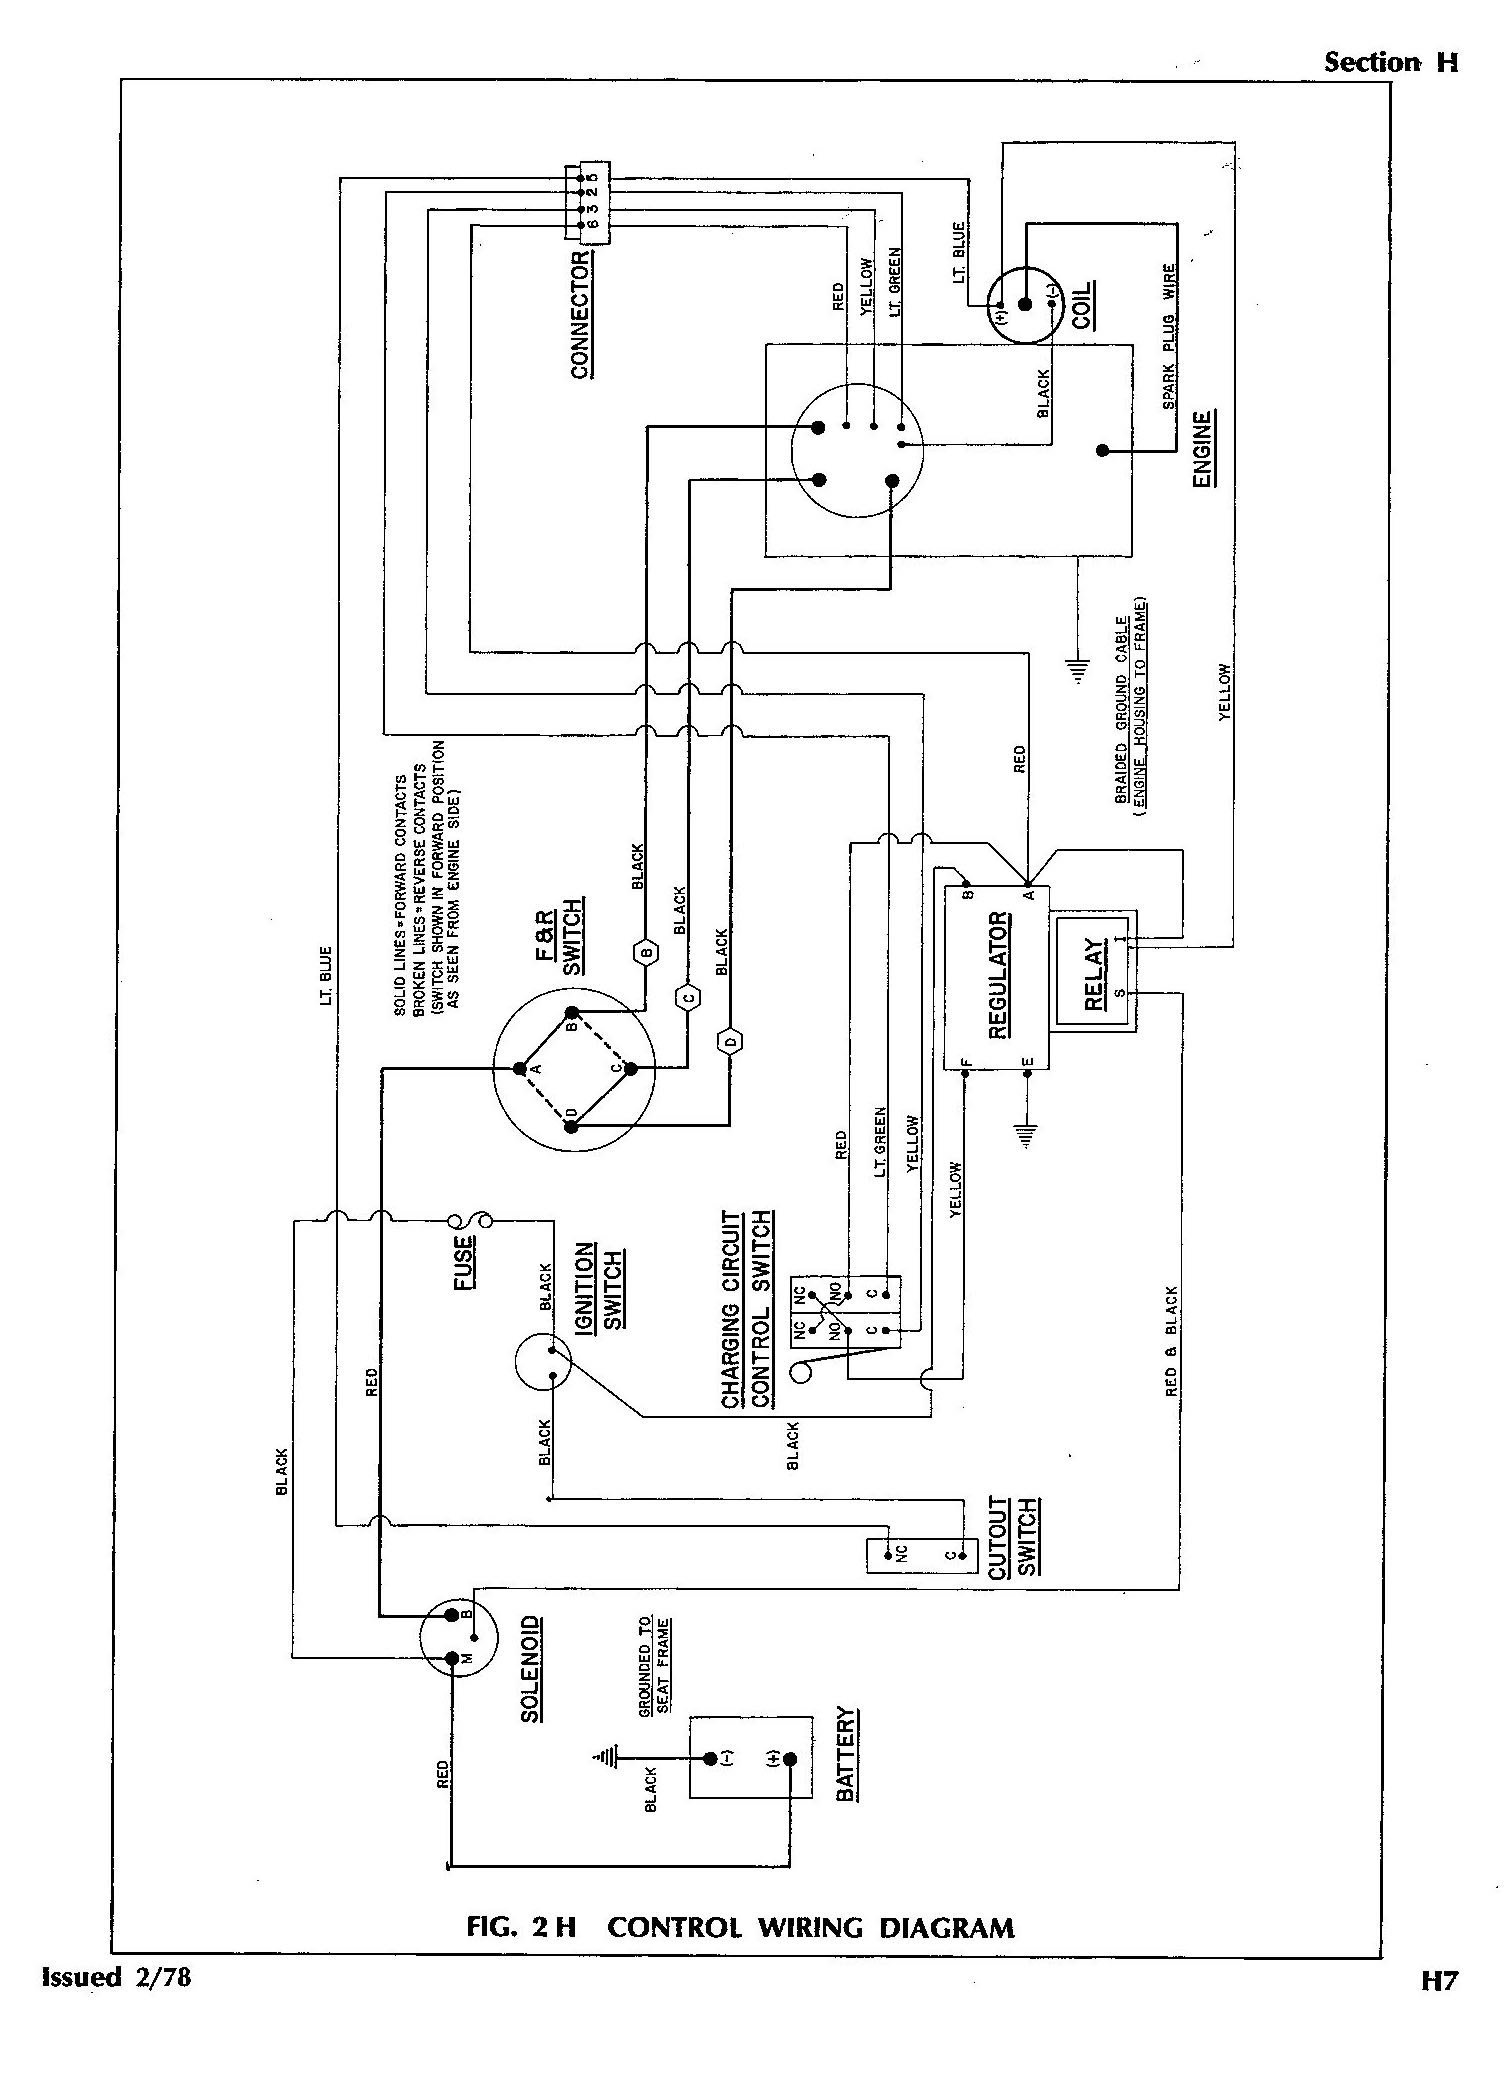 Honda Trx 70 Wiring Diagram - Wiring Diagrams List